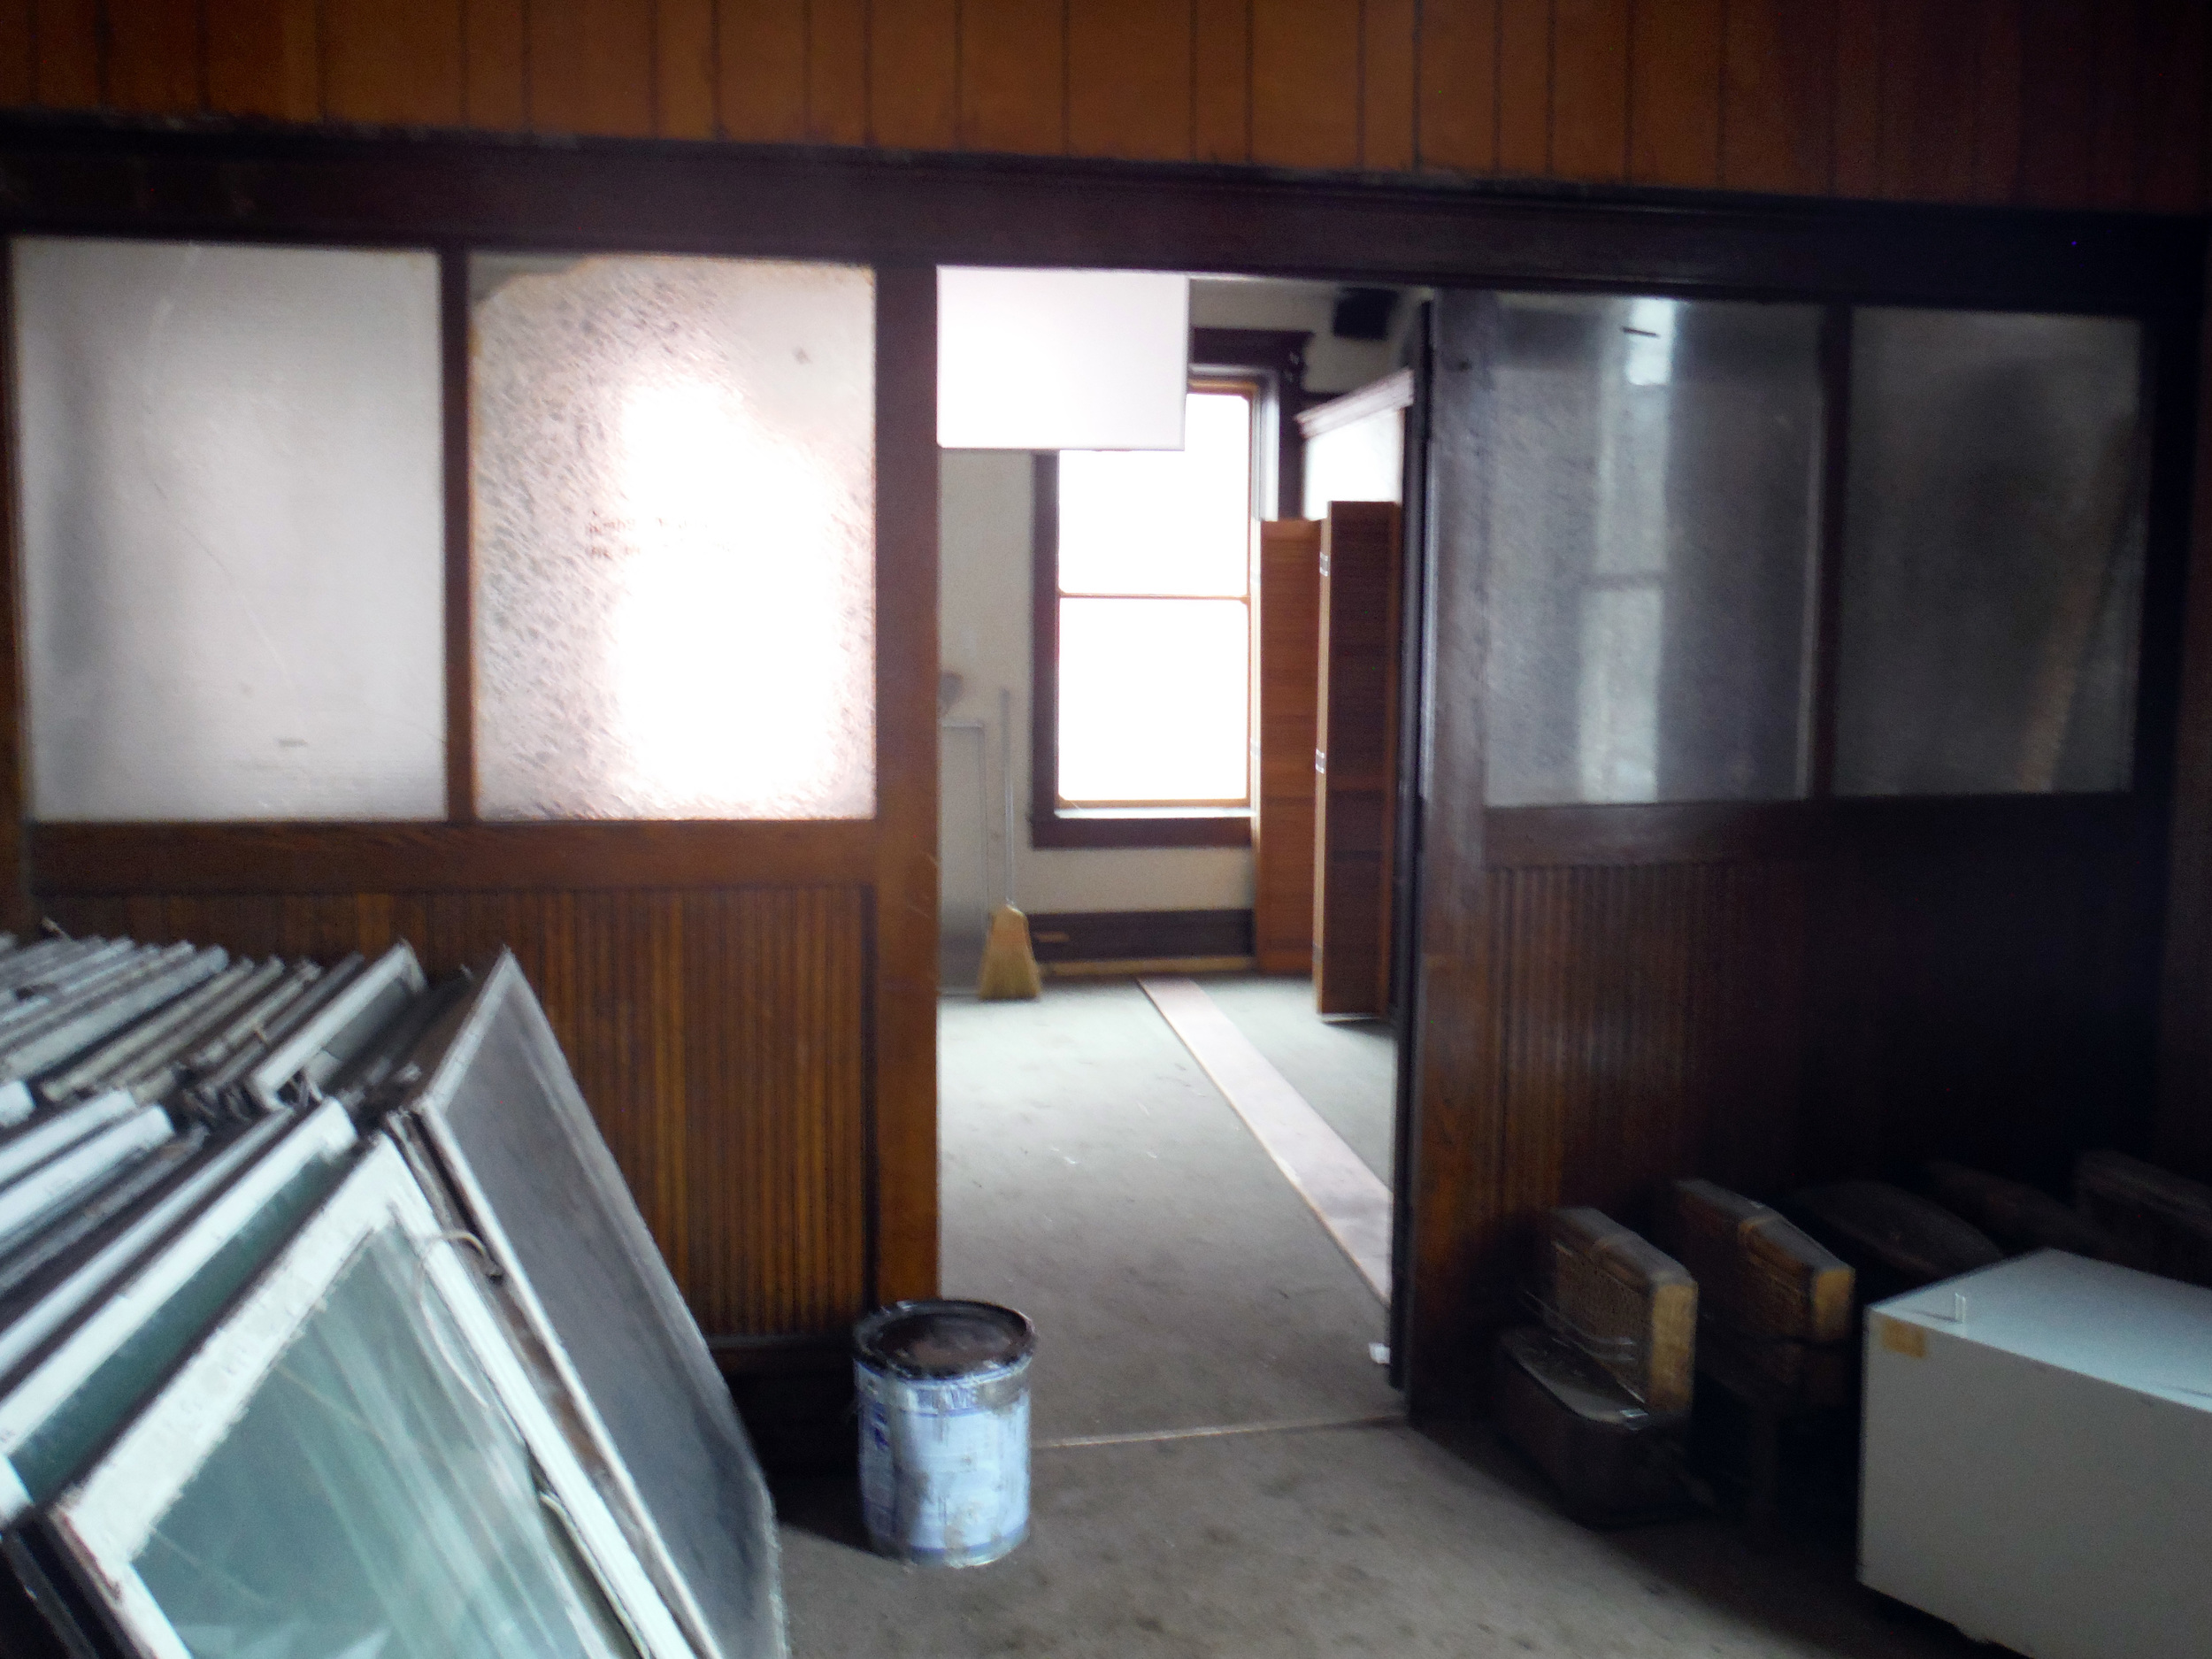 Entrance to the former dentist's office. Original windows are stacked at left. Photo by Sydney Haltom, March 2015.